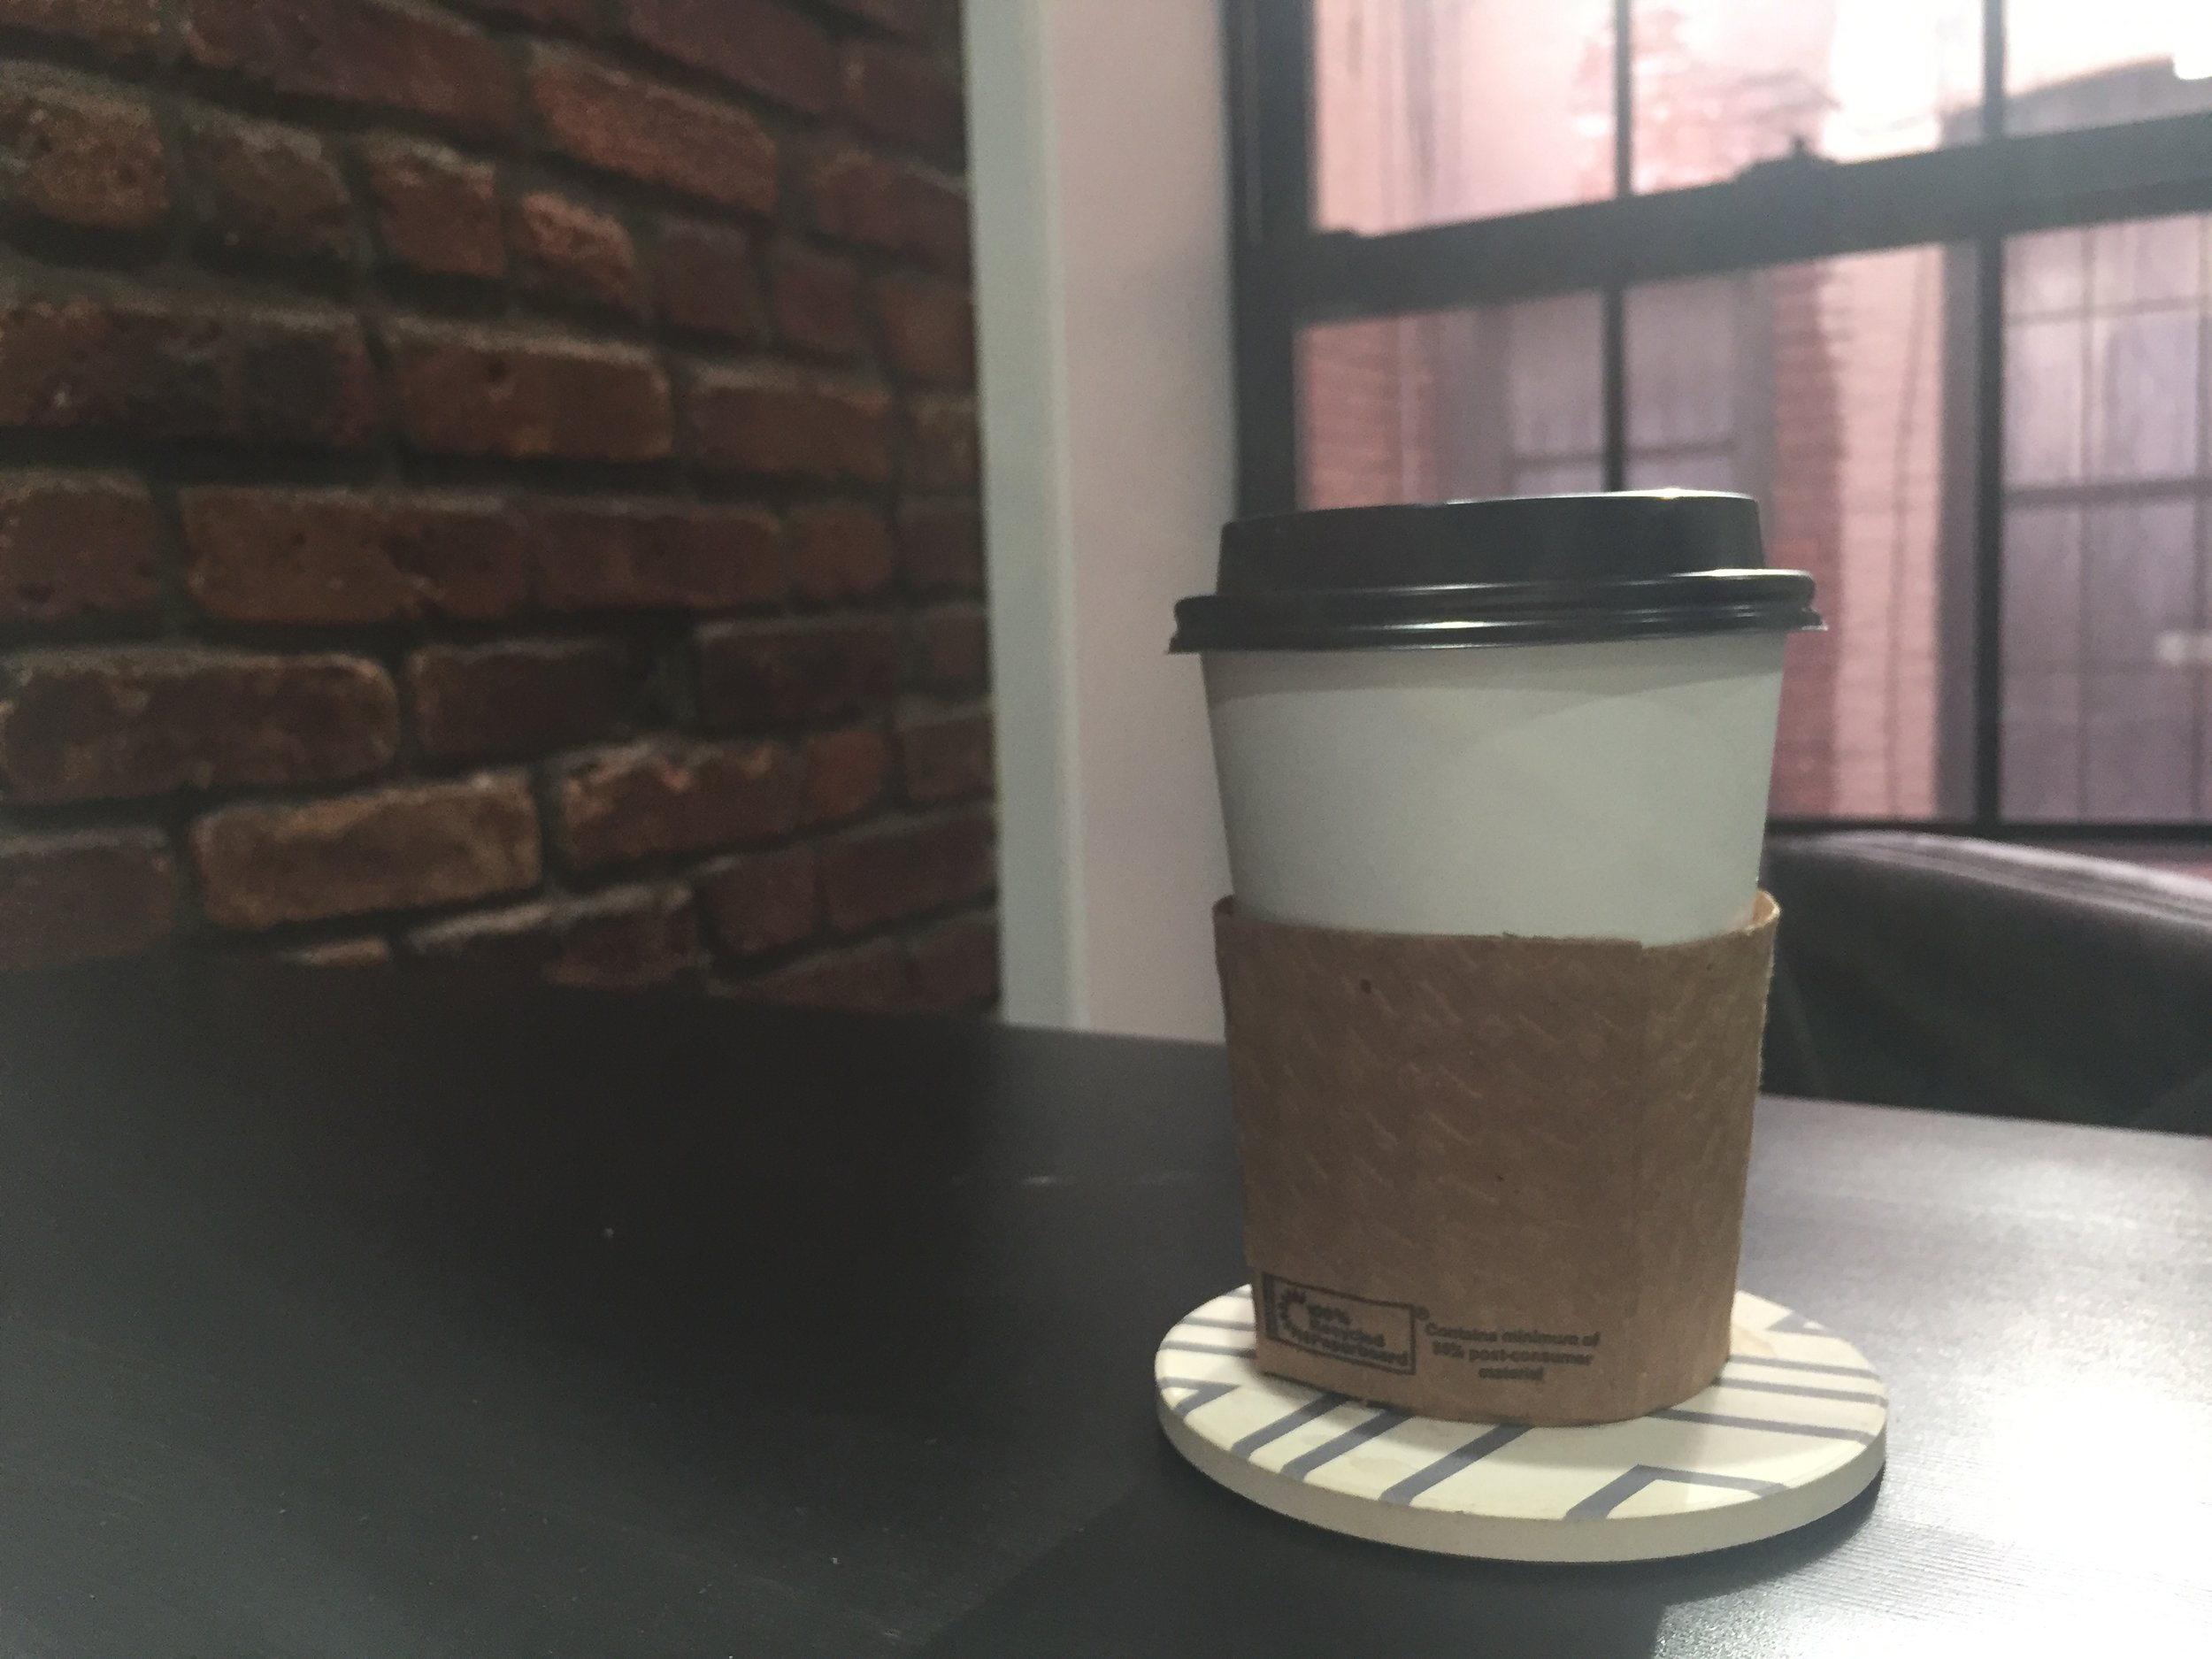 Picture of coffee I drank in the early morning after on and off troubleshooting for several hours.